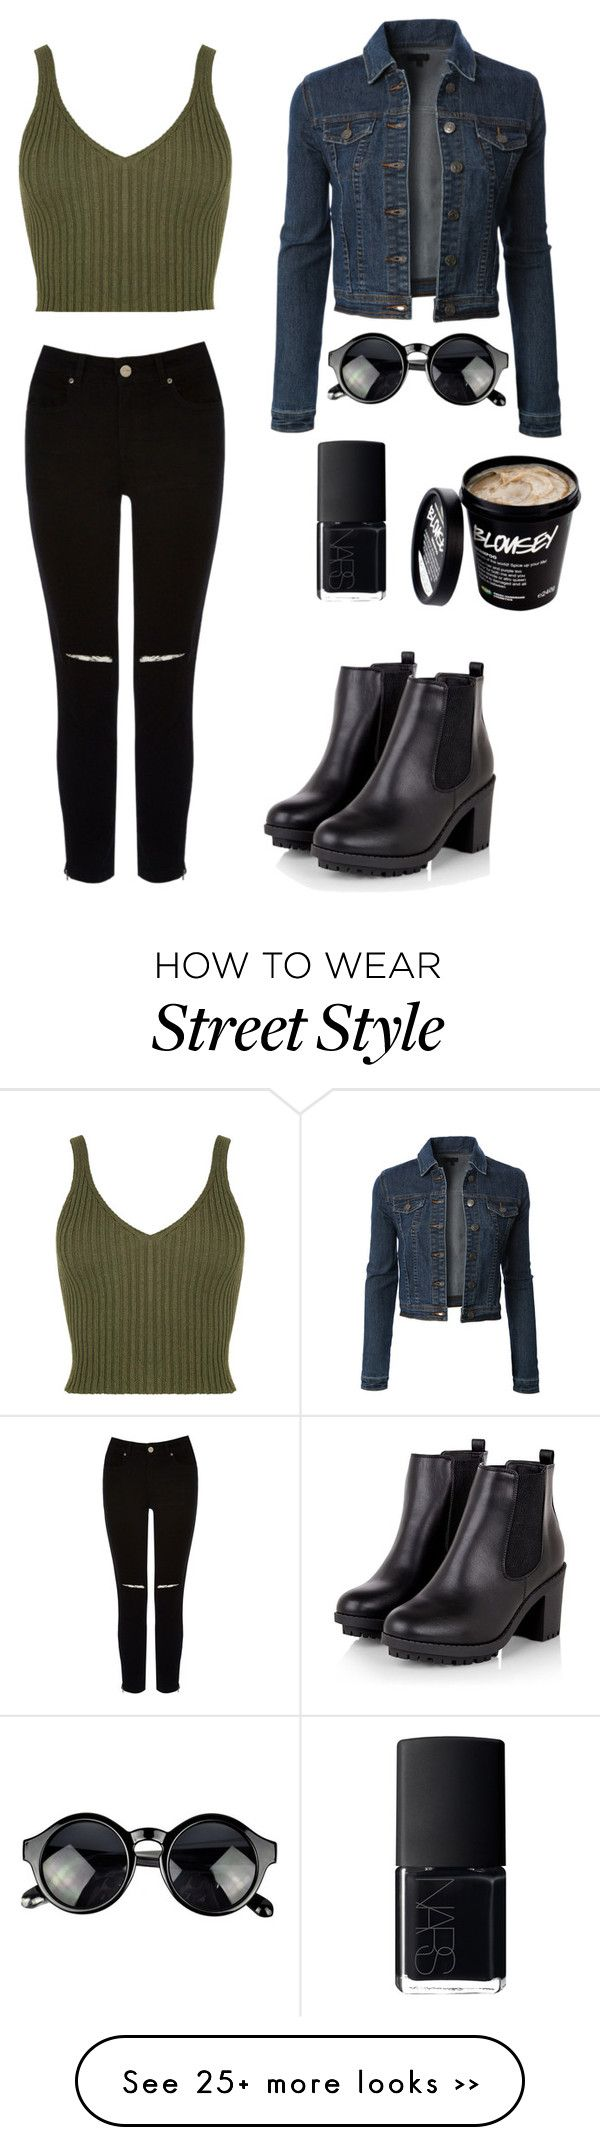 """Street style"" by soburns00 on Polyvore featuring Oasis, NARS Cosmetics and LE3NO"